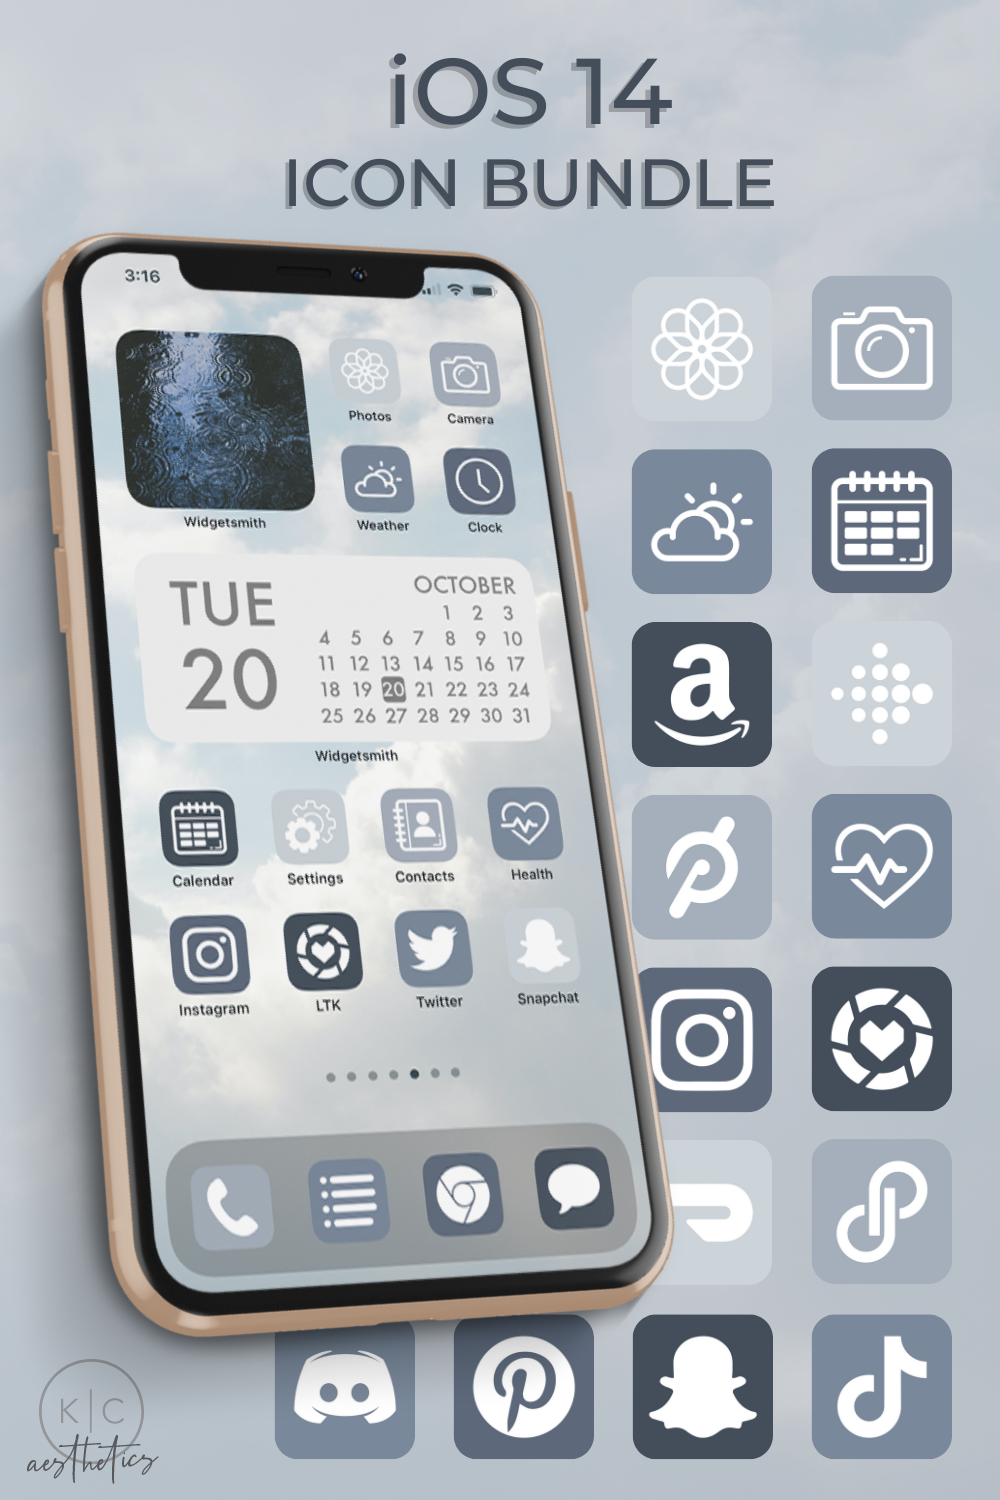 Ios 14 Homescreen Step By Step Guide Iphone Wallpaper App Homescreen Iphone Iphone App Layout